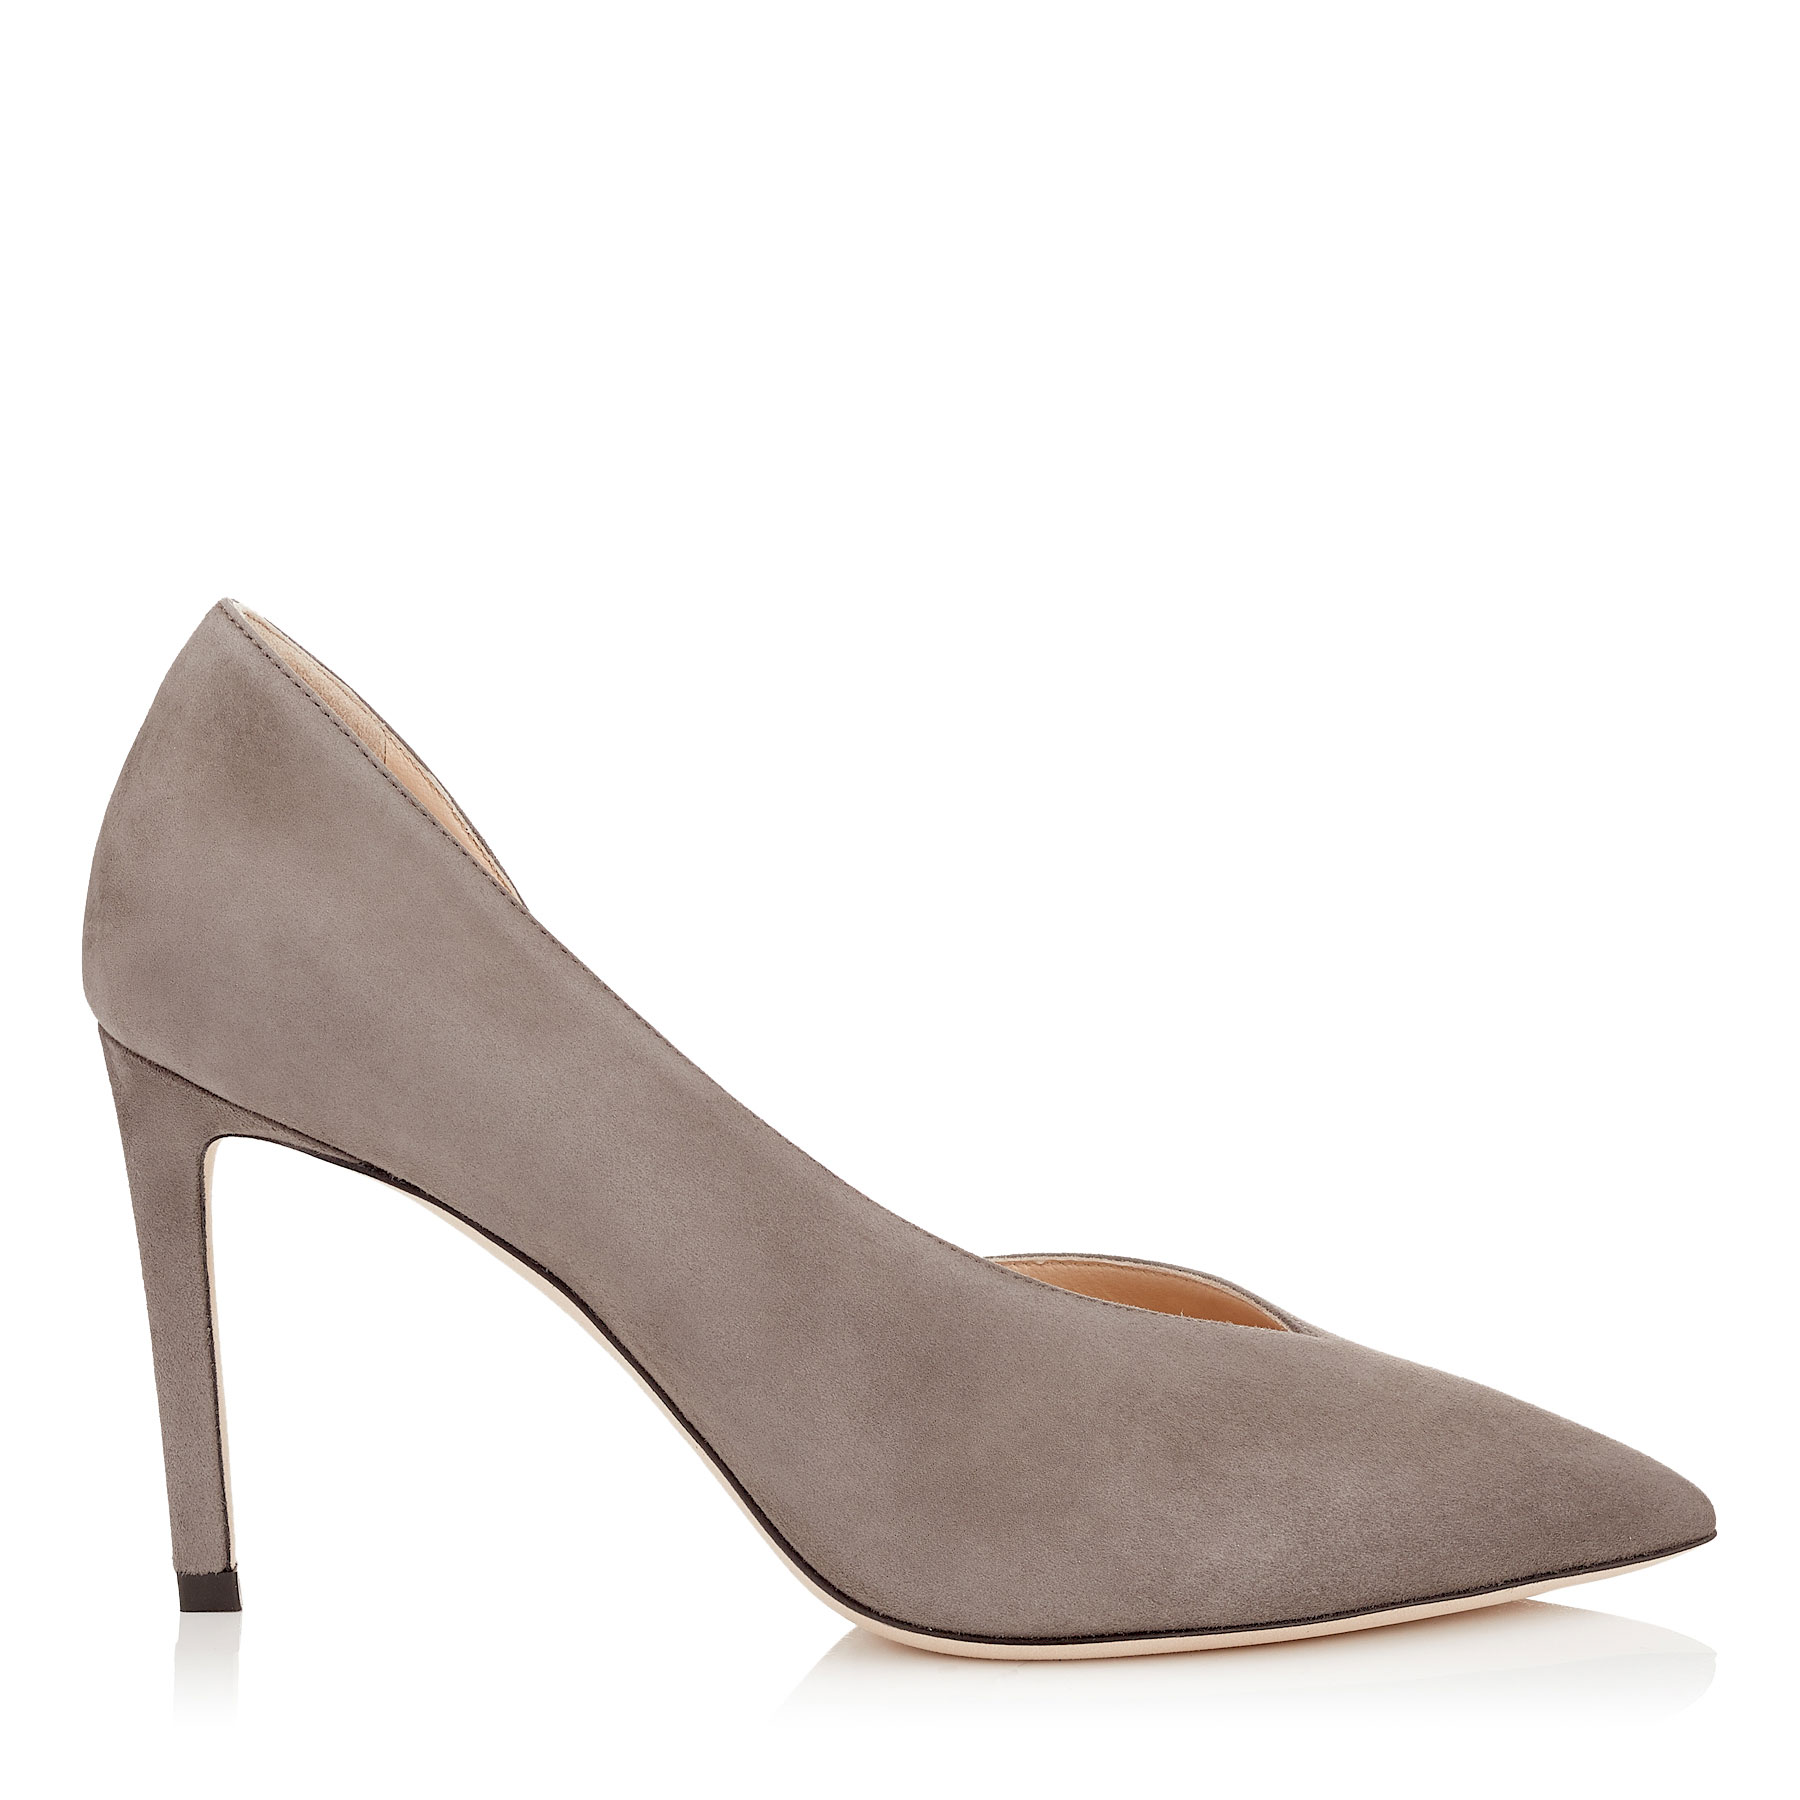 SOPHIA 85 Dark Grey Suede Pointy Toe Pumps by Jimmy Choo